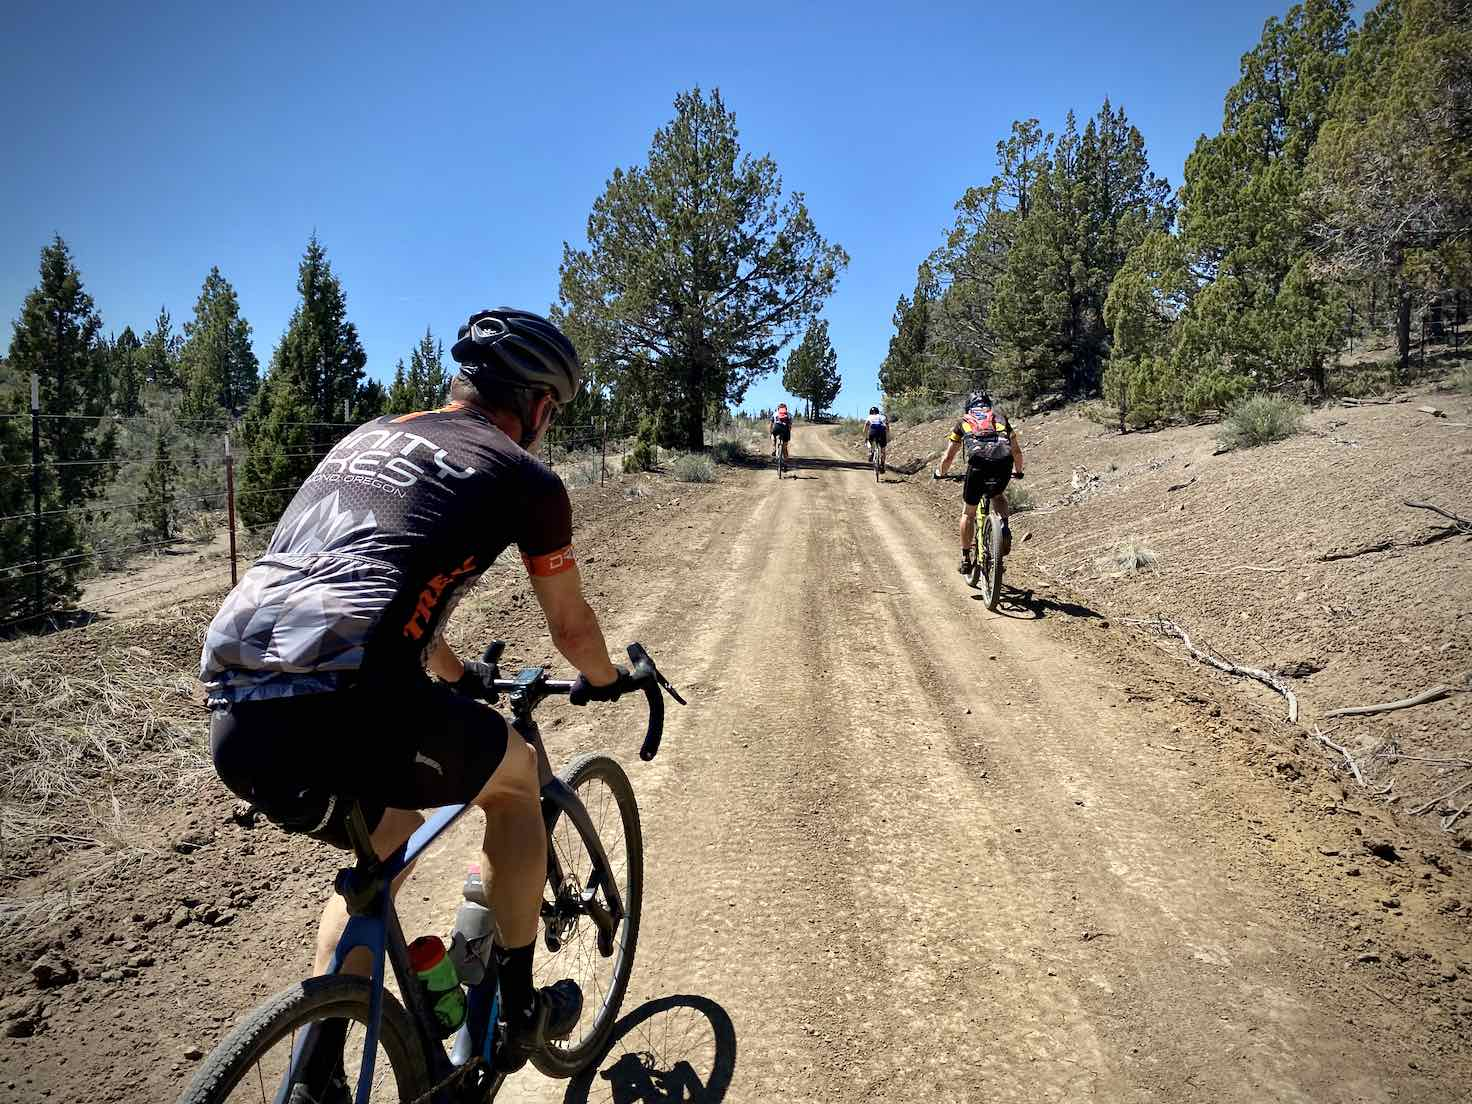 Gravel cyclist climbing steep pitch on Roberts road in Central Oregon.